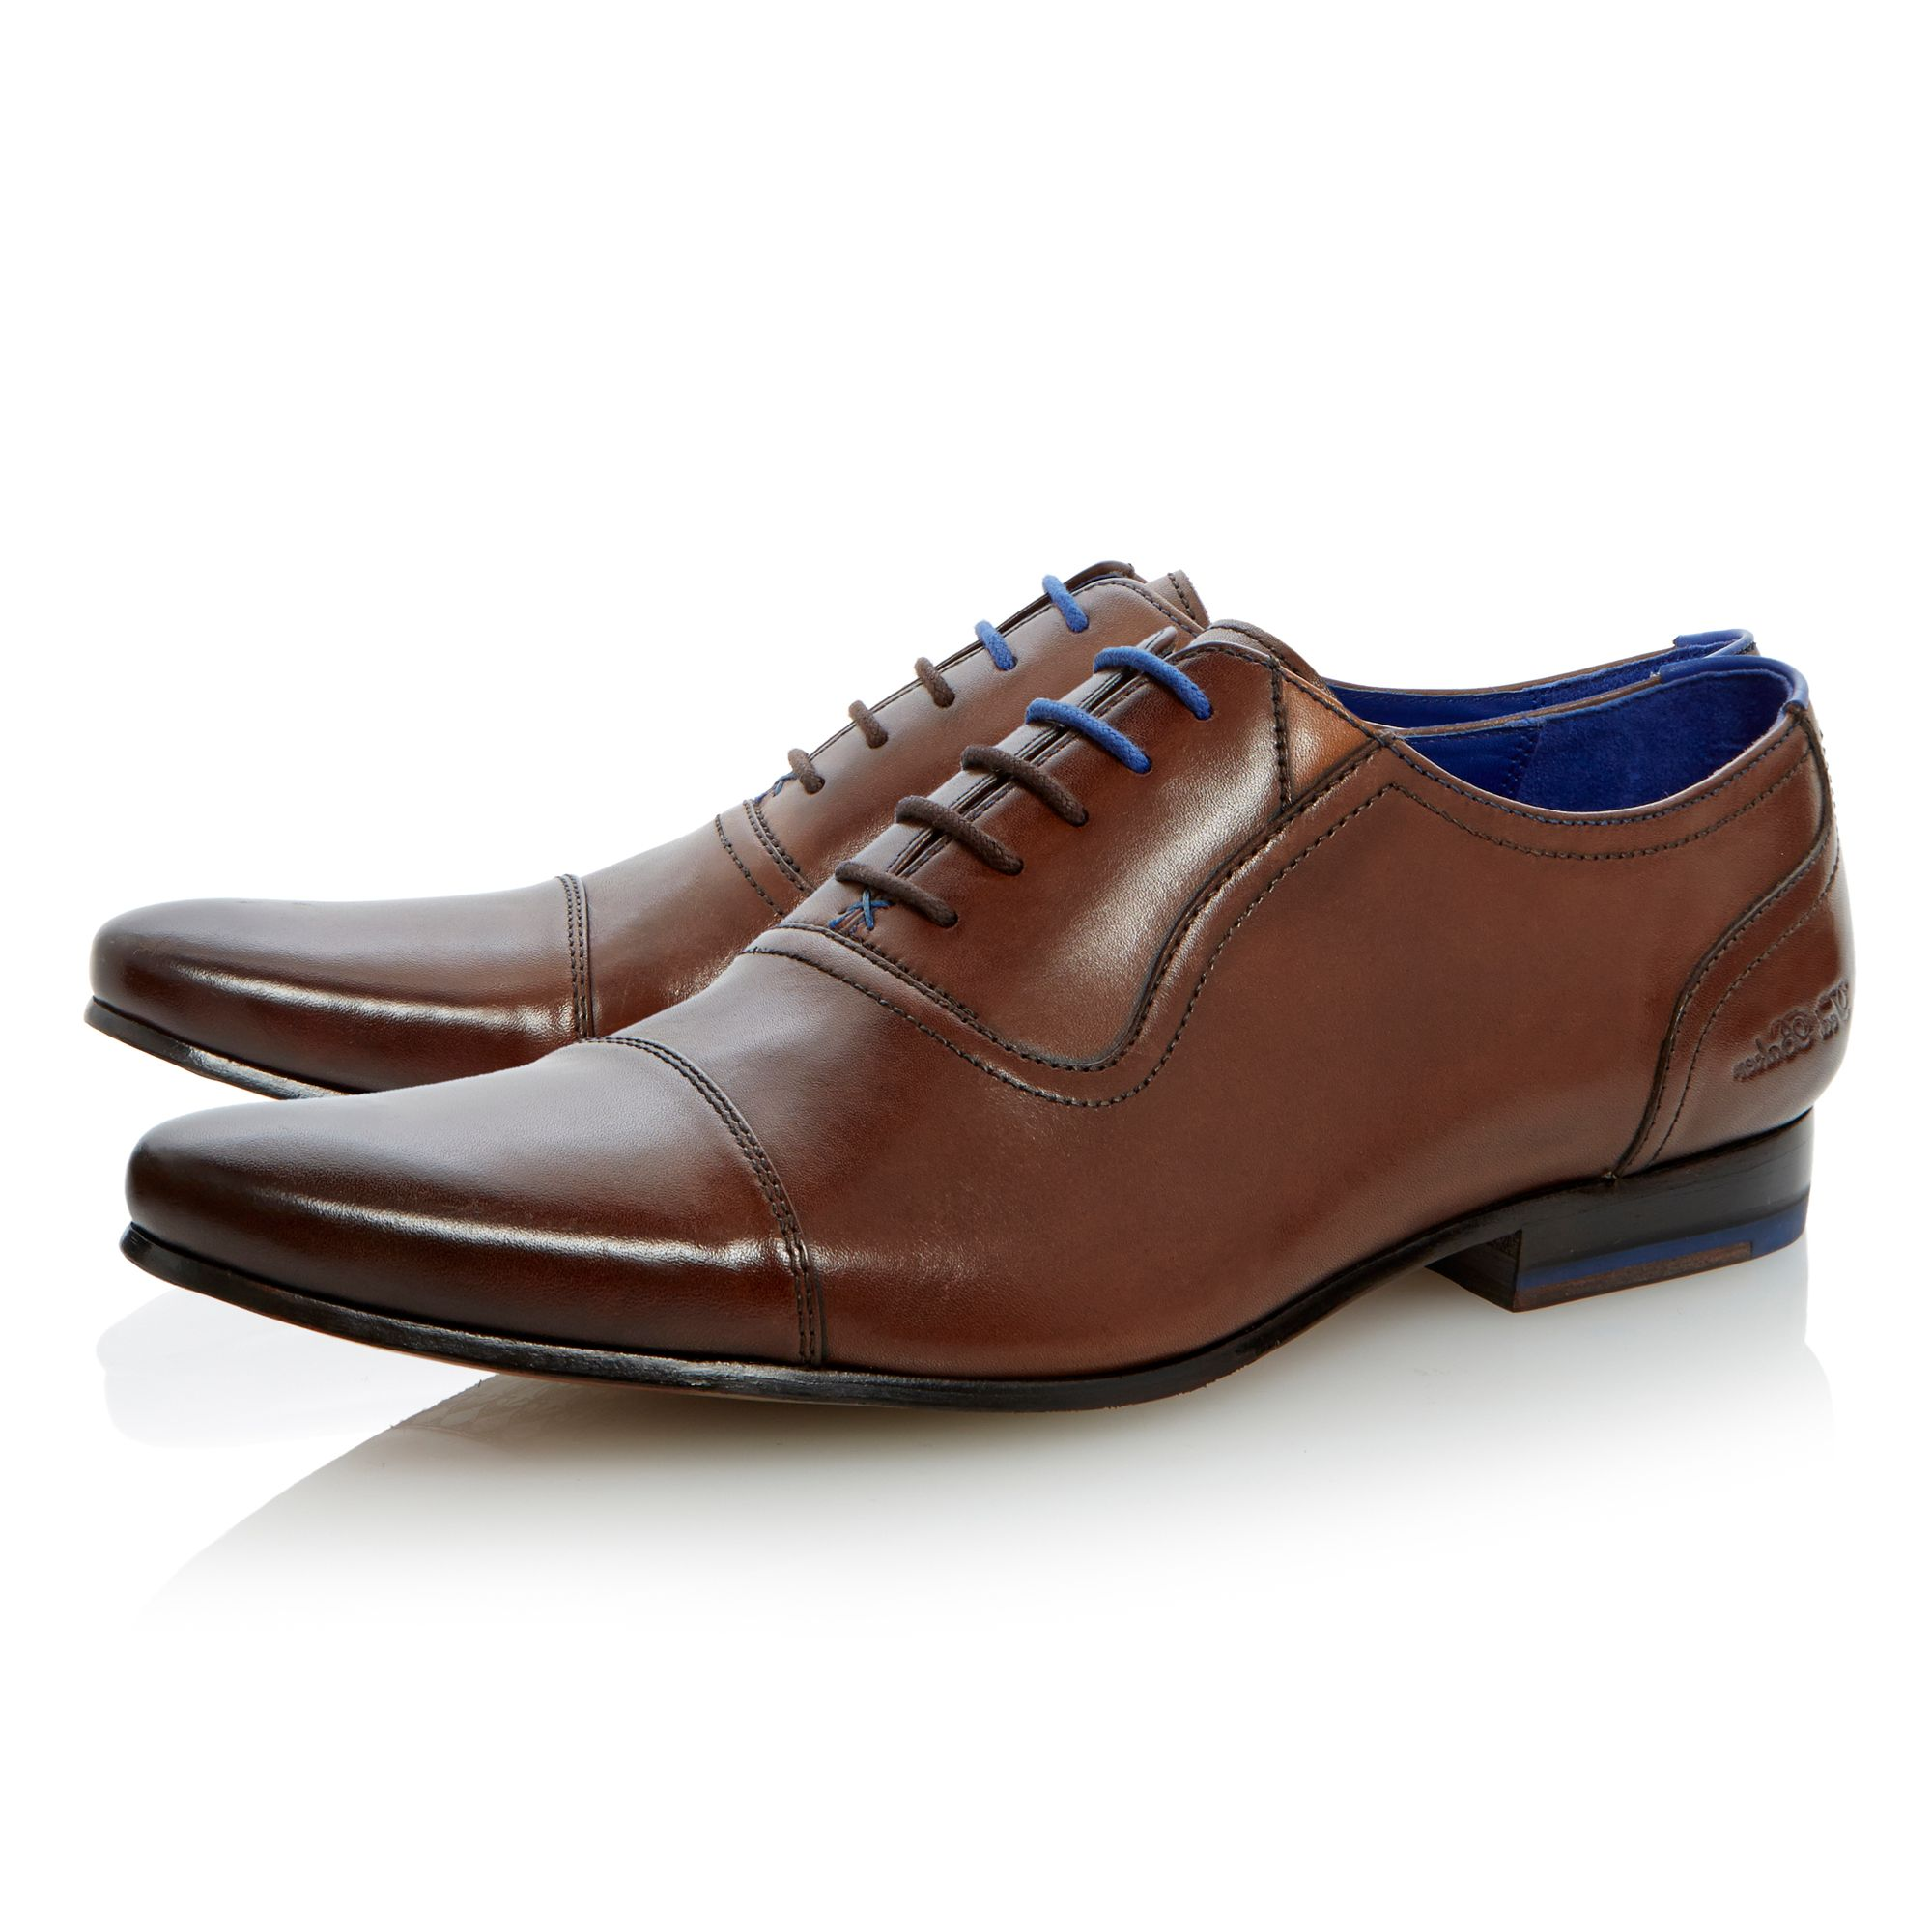 Rogrr toe cap detail oxford lace up shoe